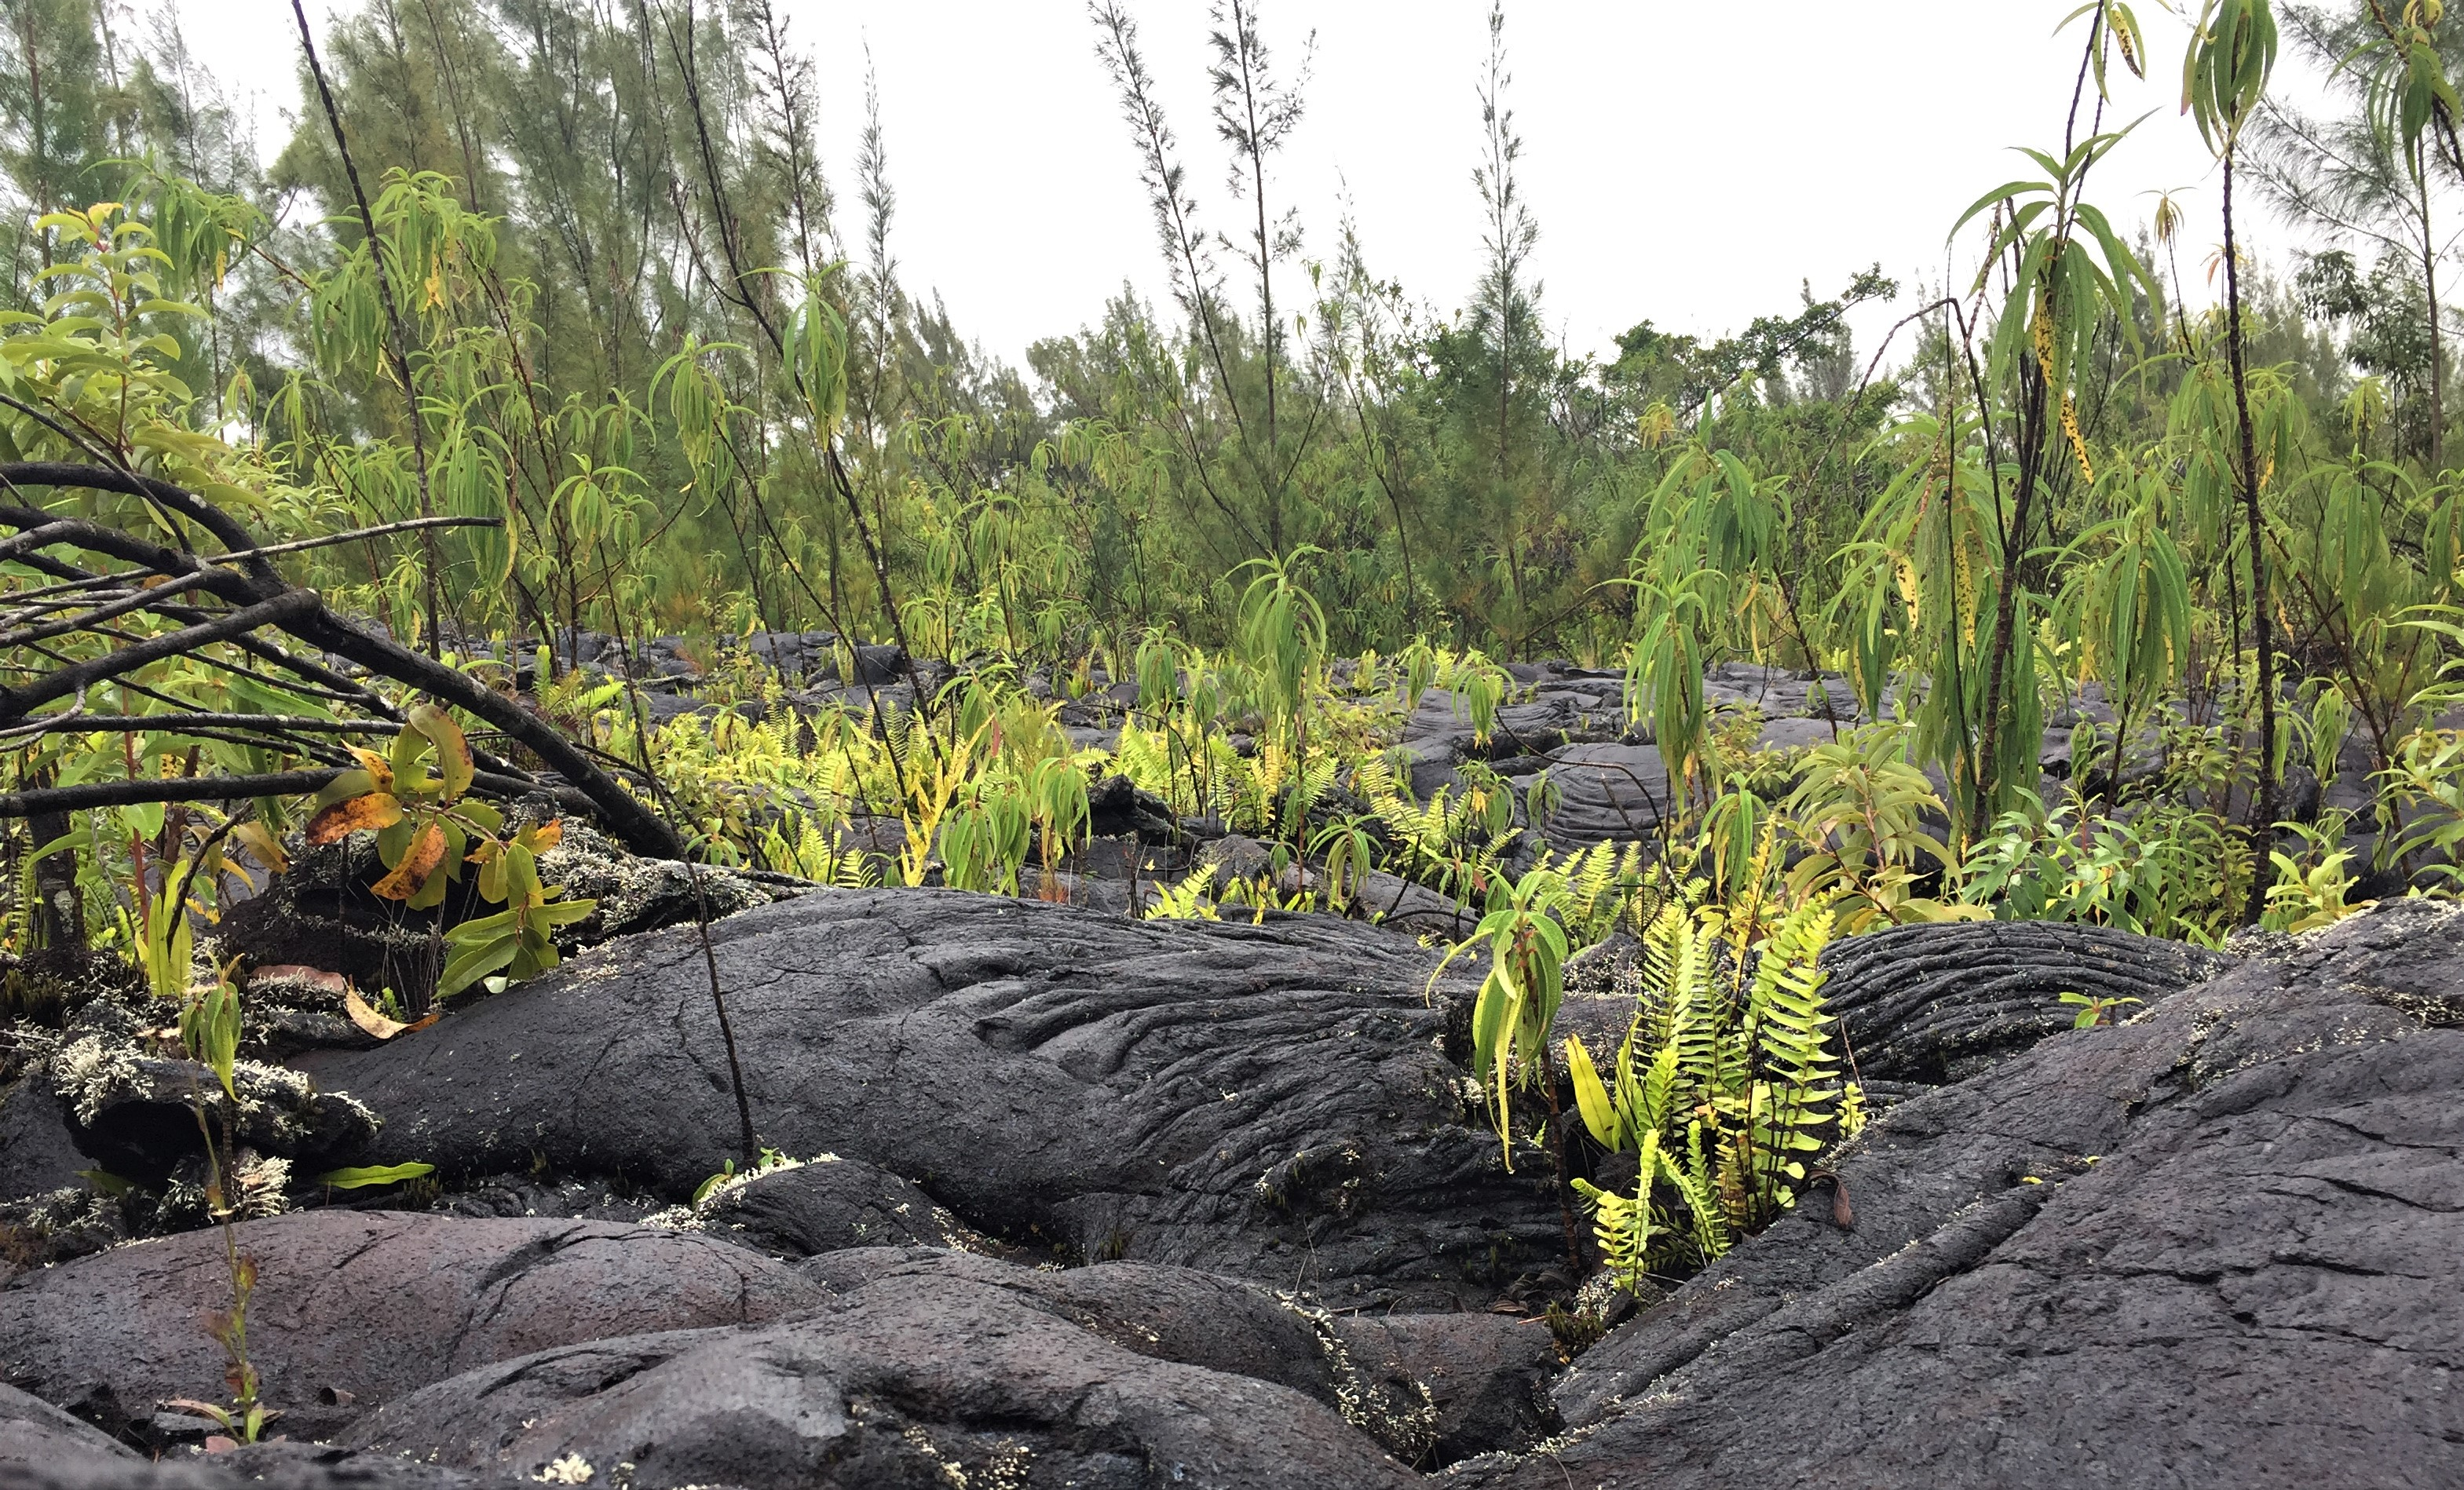 The lava fields